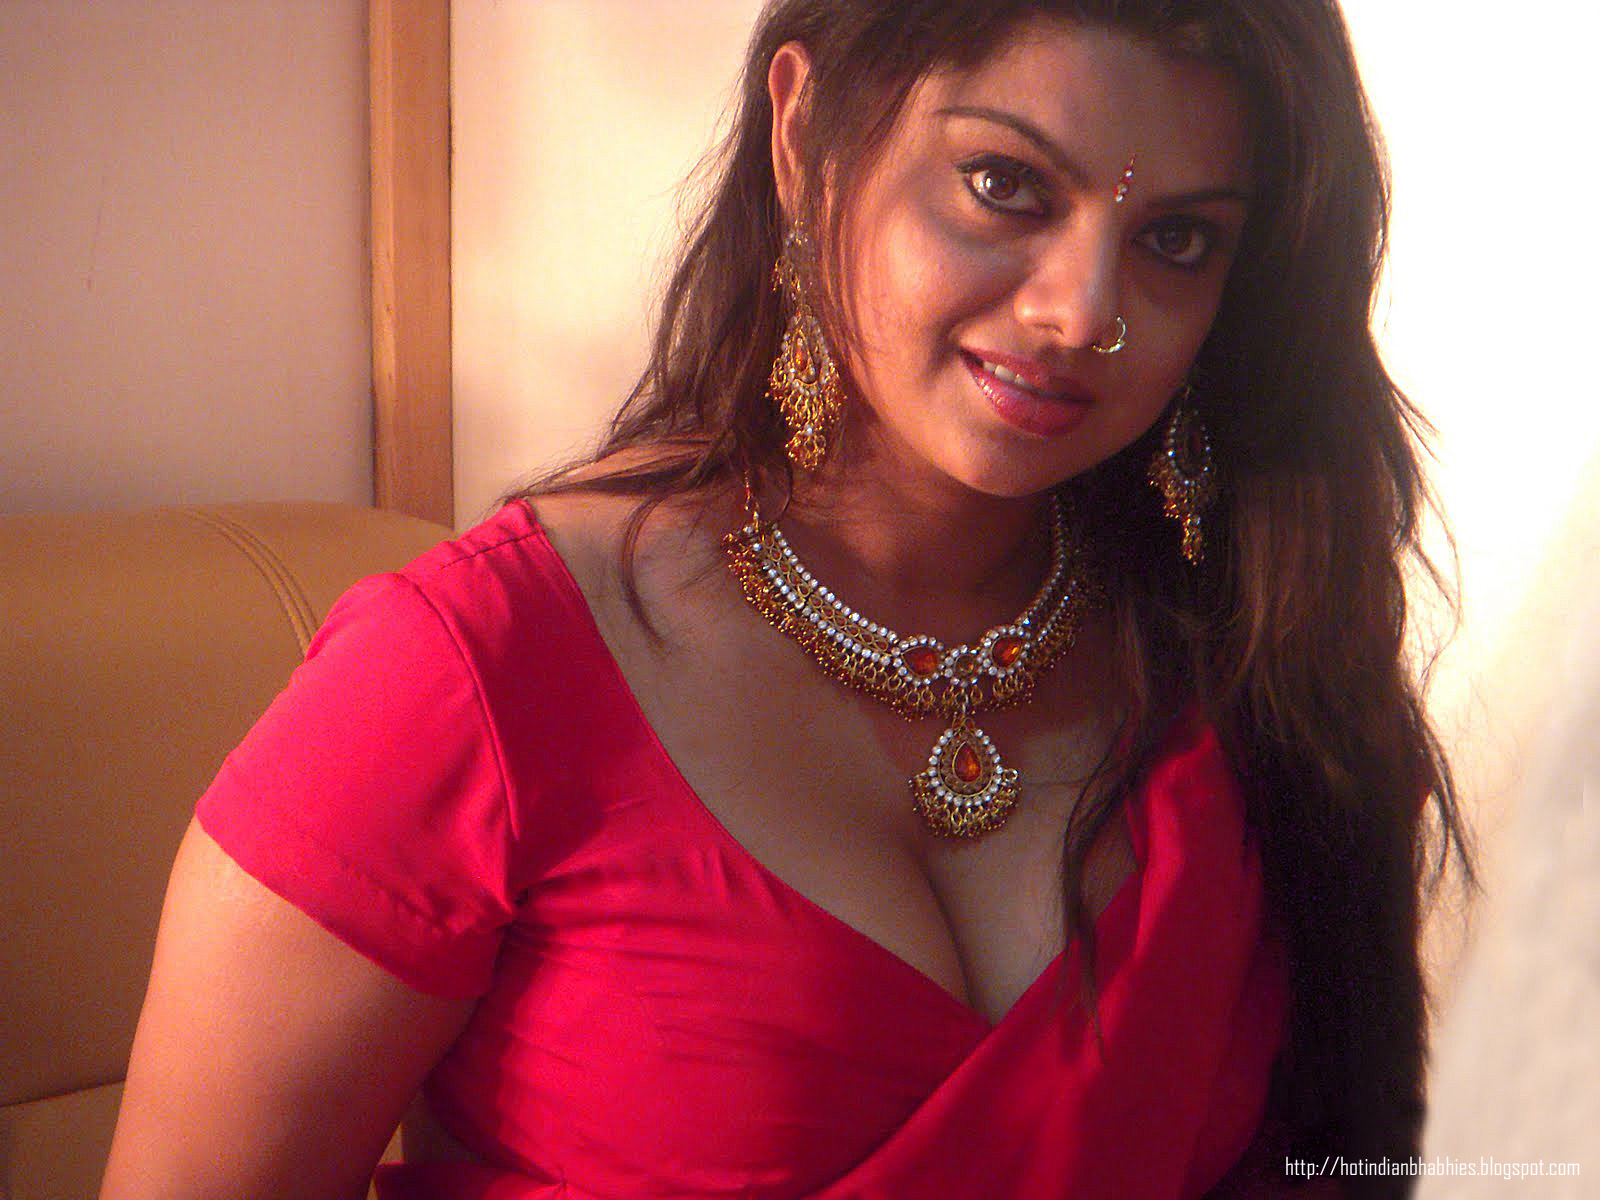 1 Swathi Varma Hot Photo gallery arabic tamil indian sexy babes house wife sex pictures bed room pictures nude pisture sari pictures big boobs tits pictures indian tamil big ass hot bikini Way to jump on the young adult bandwagon